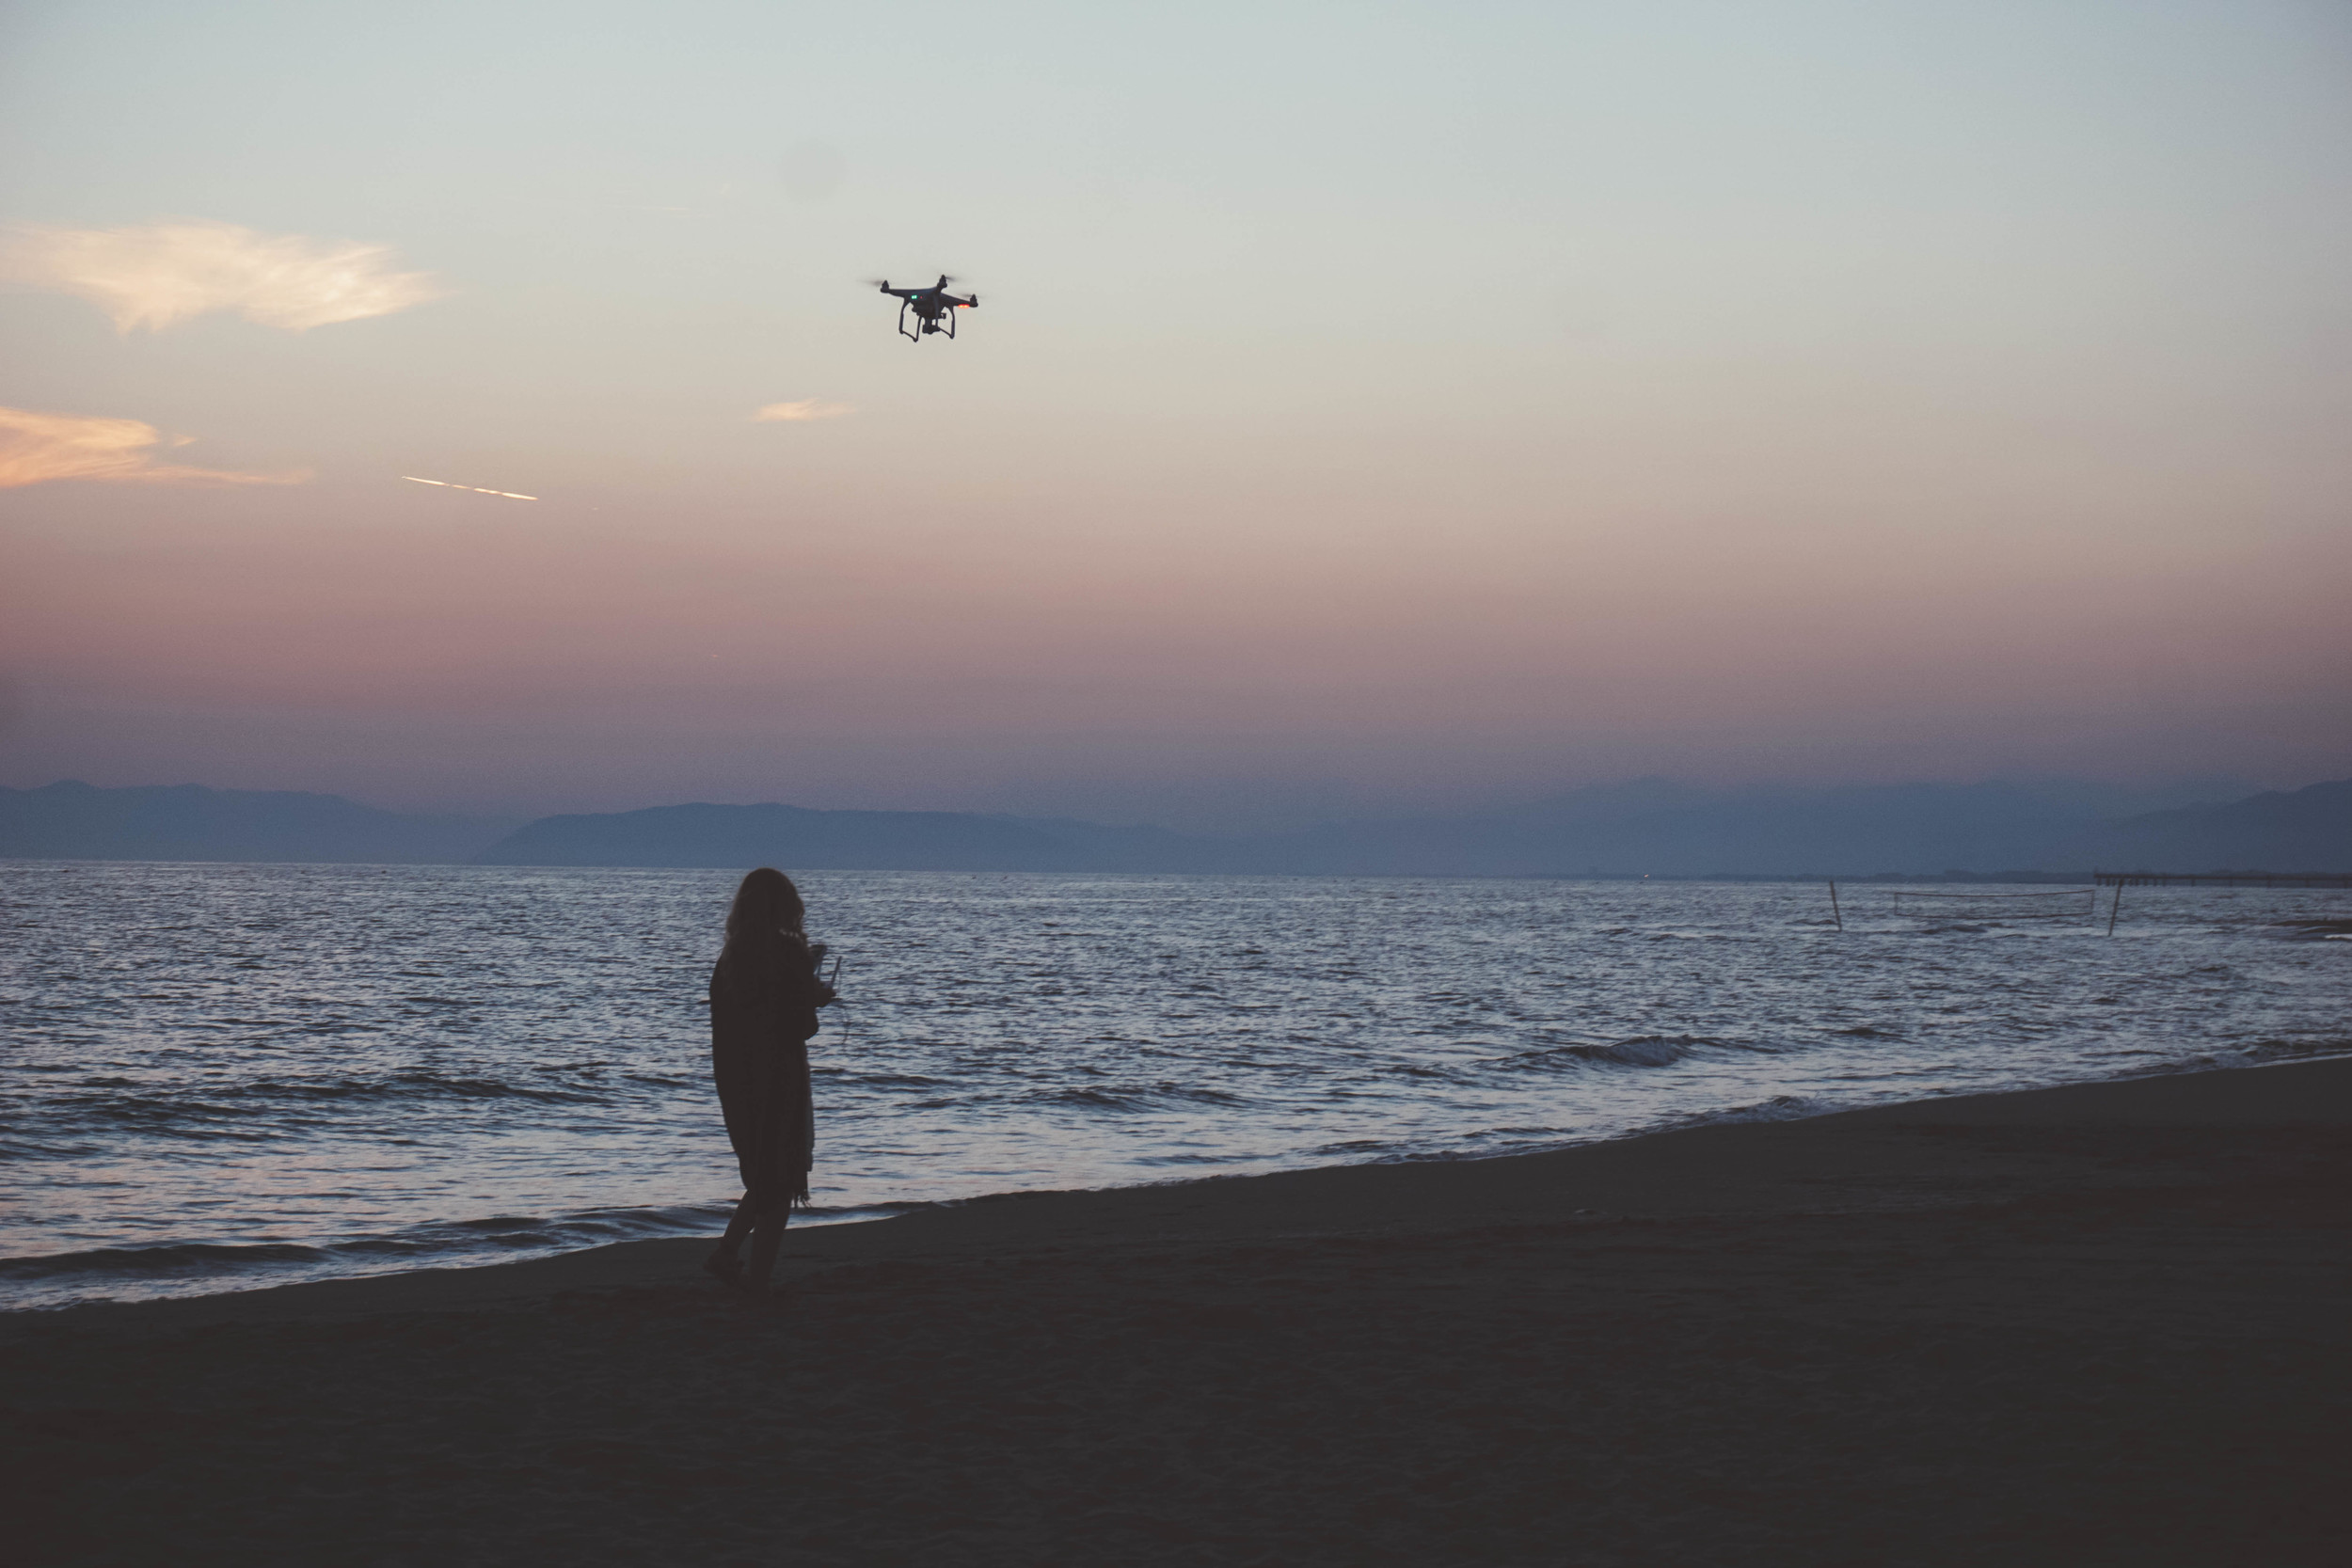 Drone photography in Lido di Camaoire. Beach & ocean shots during the sunset.